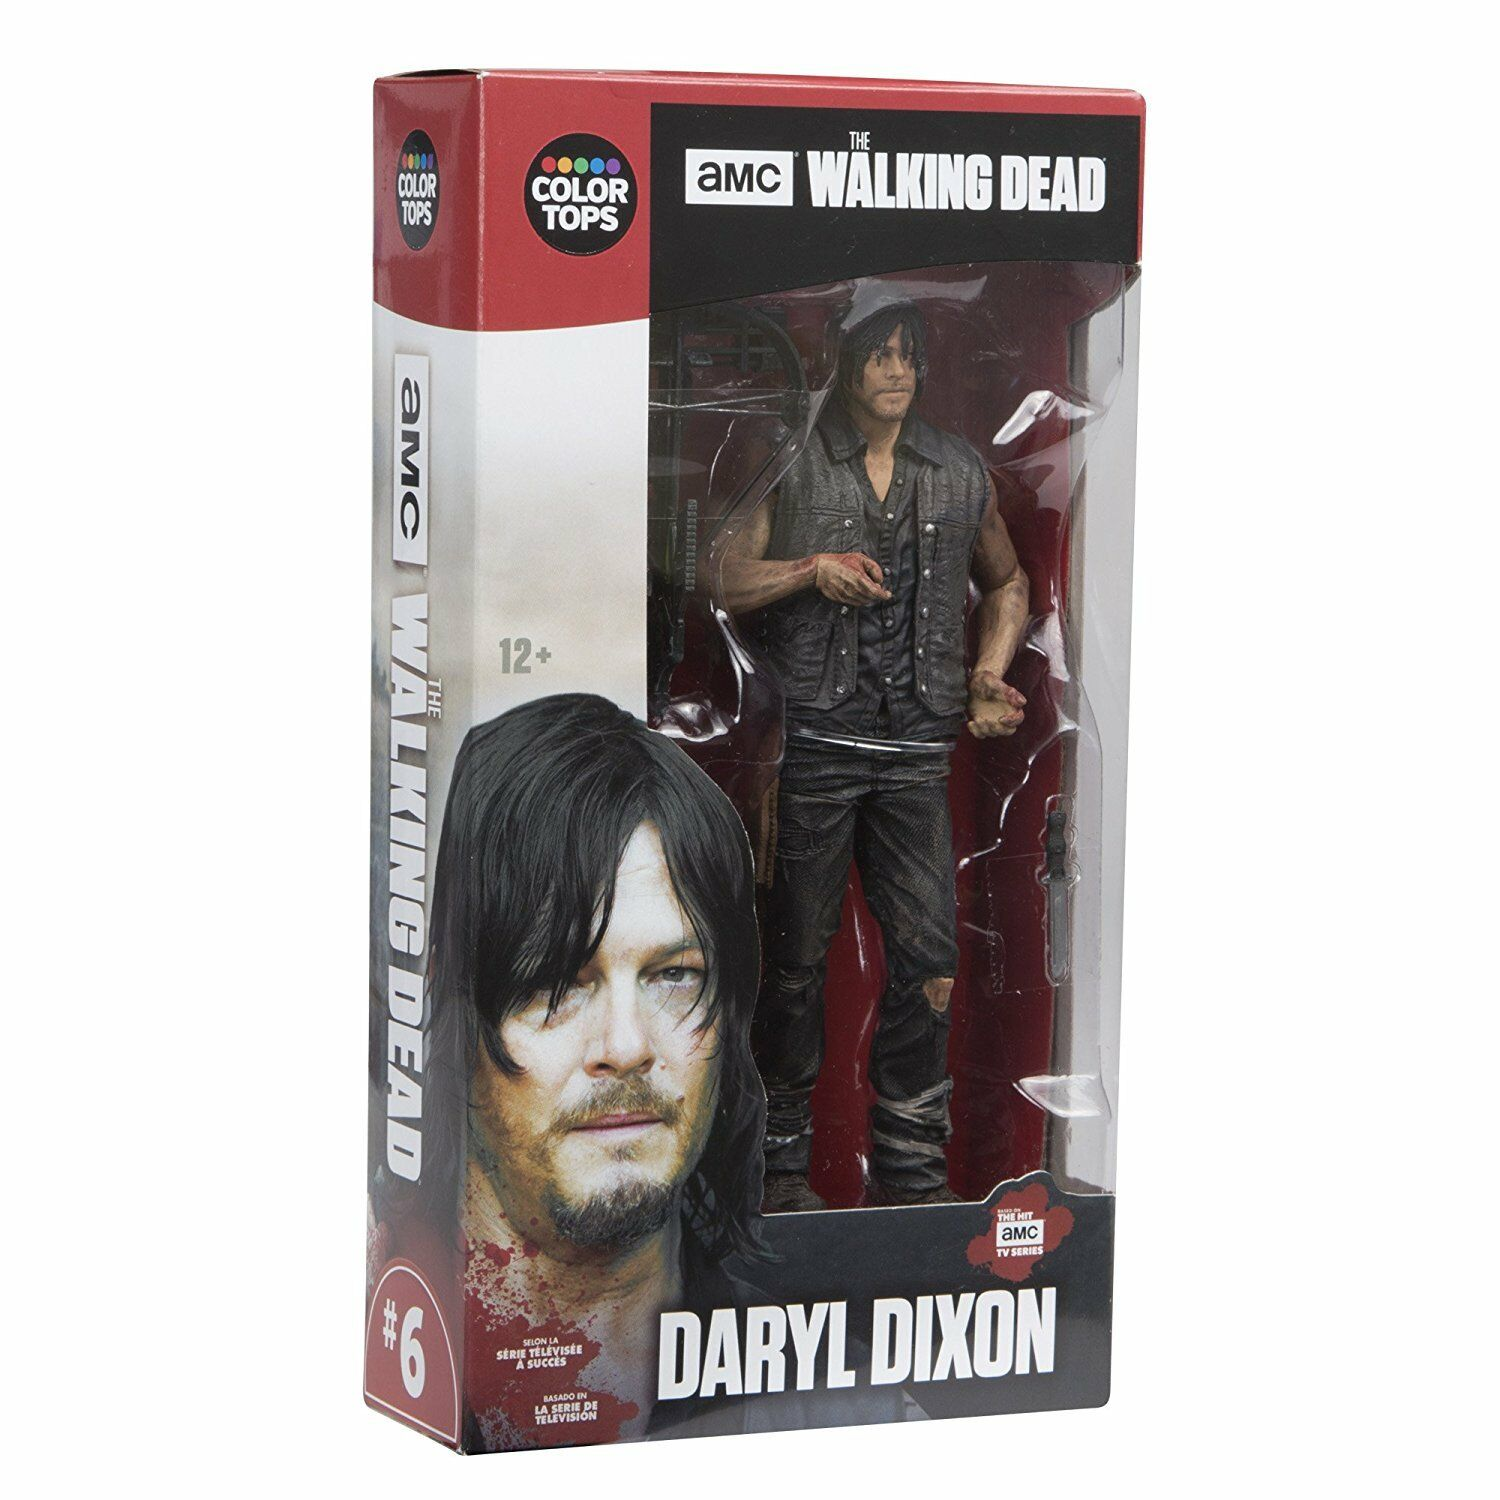 The en marchant Dead TV  Series 7 in (environ 17.78 cm) Collectible Action Figure-Daryl Dixon  vente de sortie